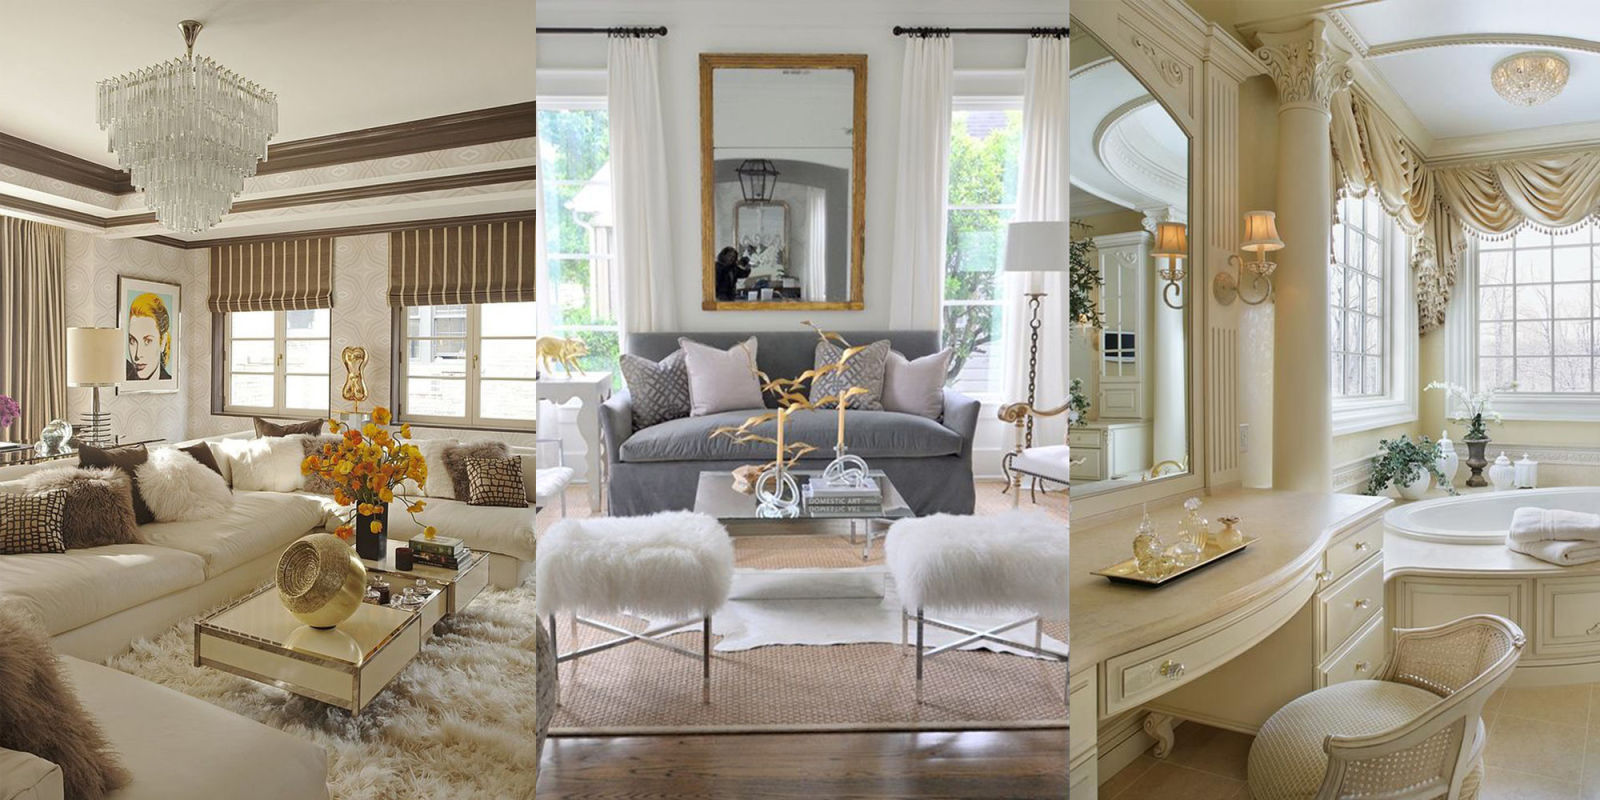 Glam Interior Design Inspiration To Take From Pinterest How To Decorate You